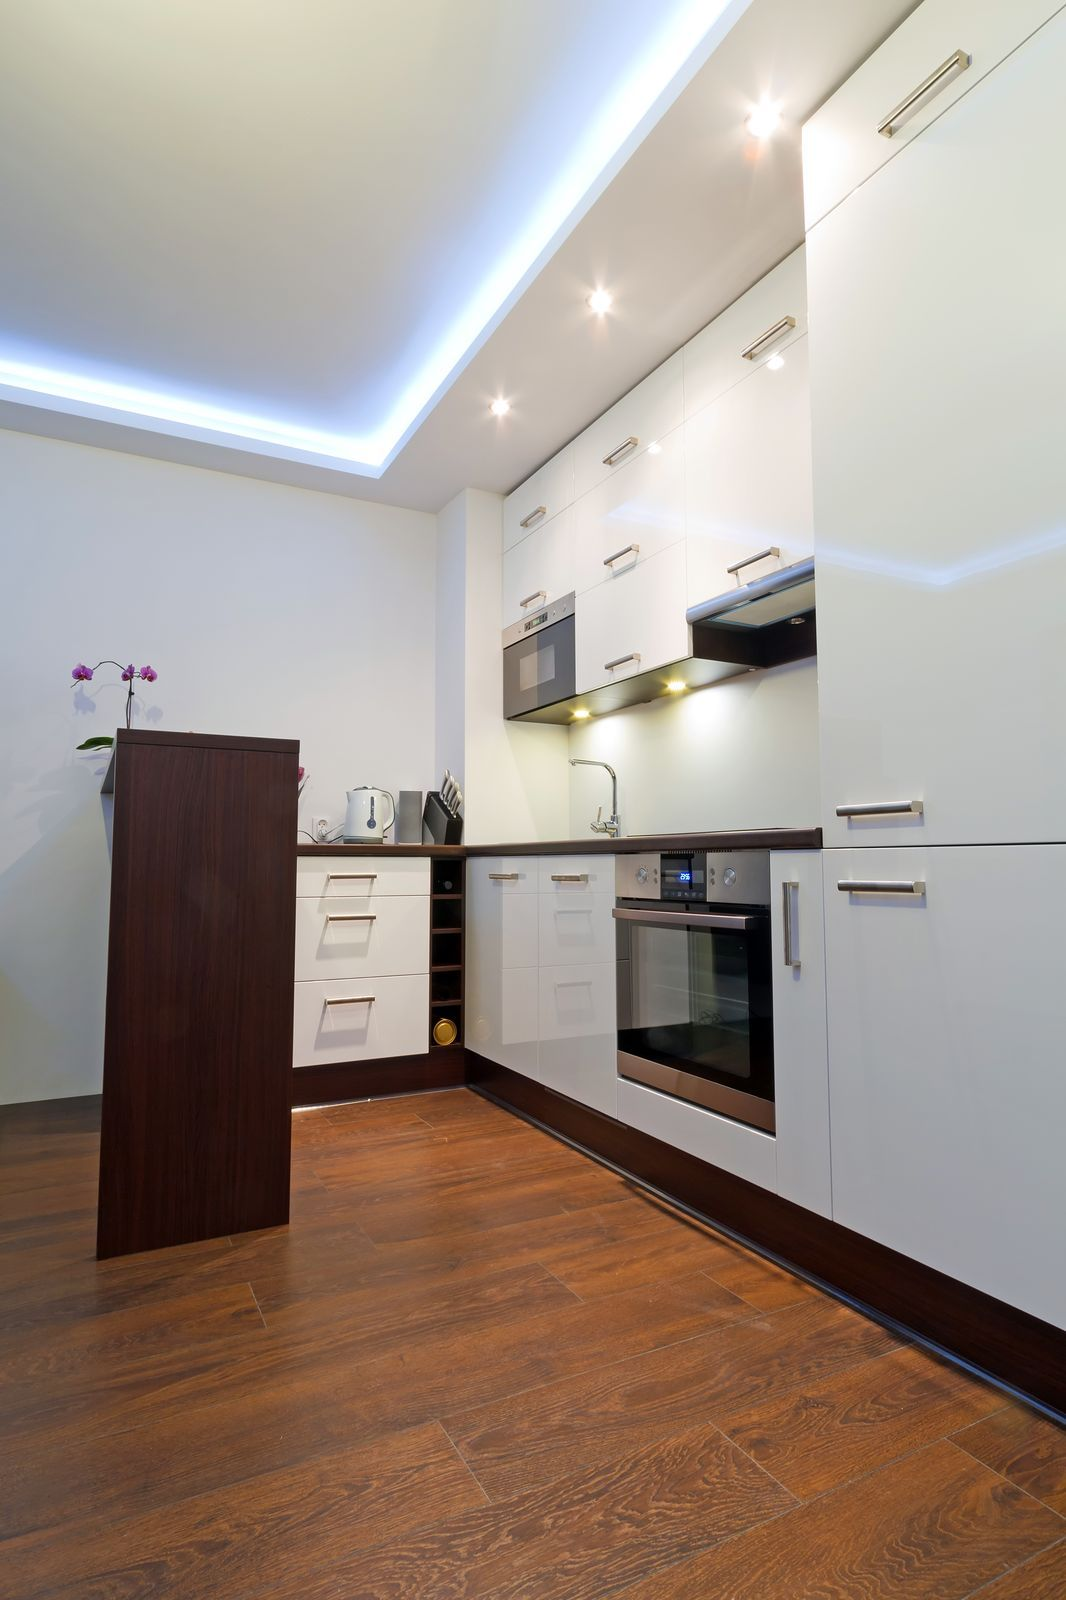 LED Lighting Around the Ceiling Perimeter of a Modern Day Kitchen